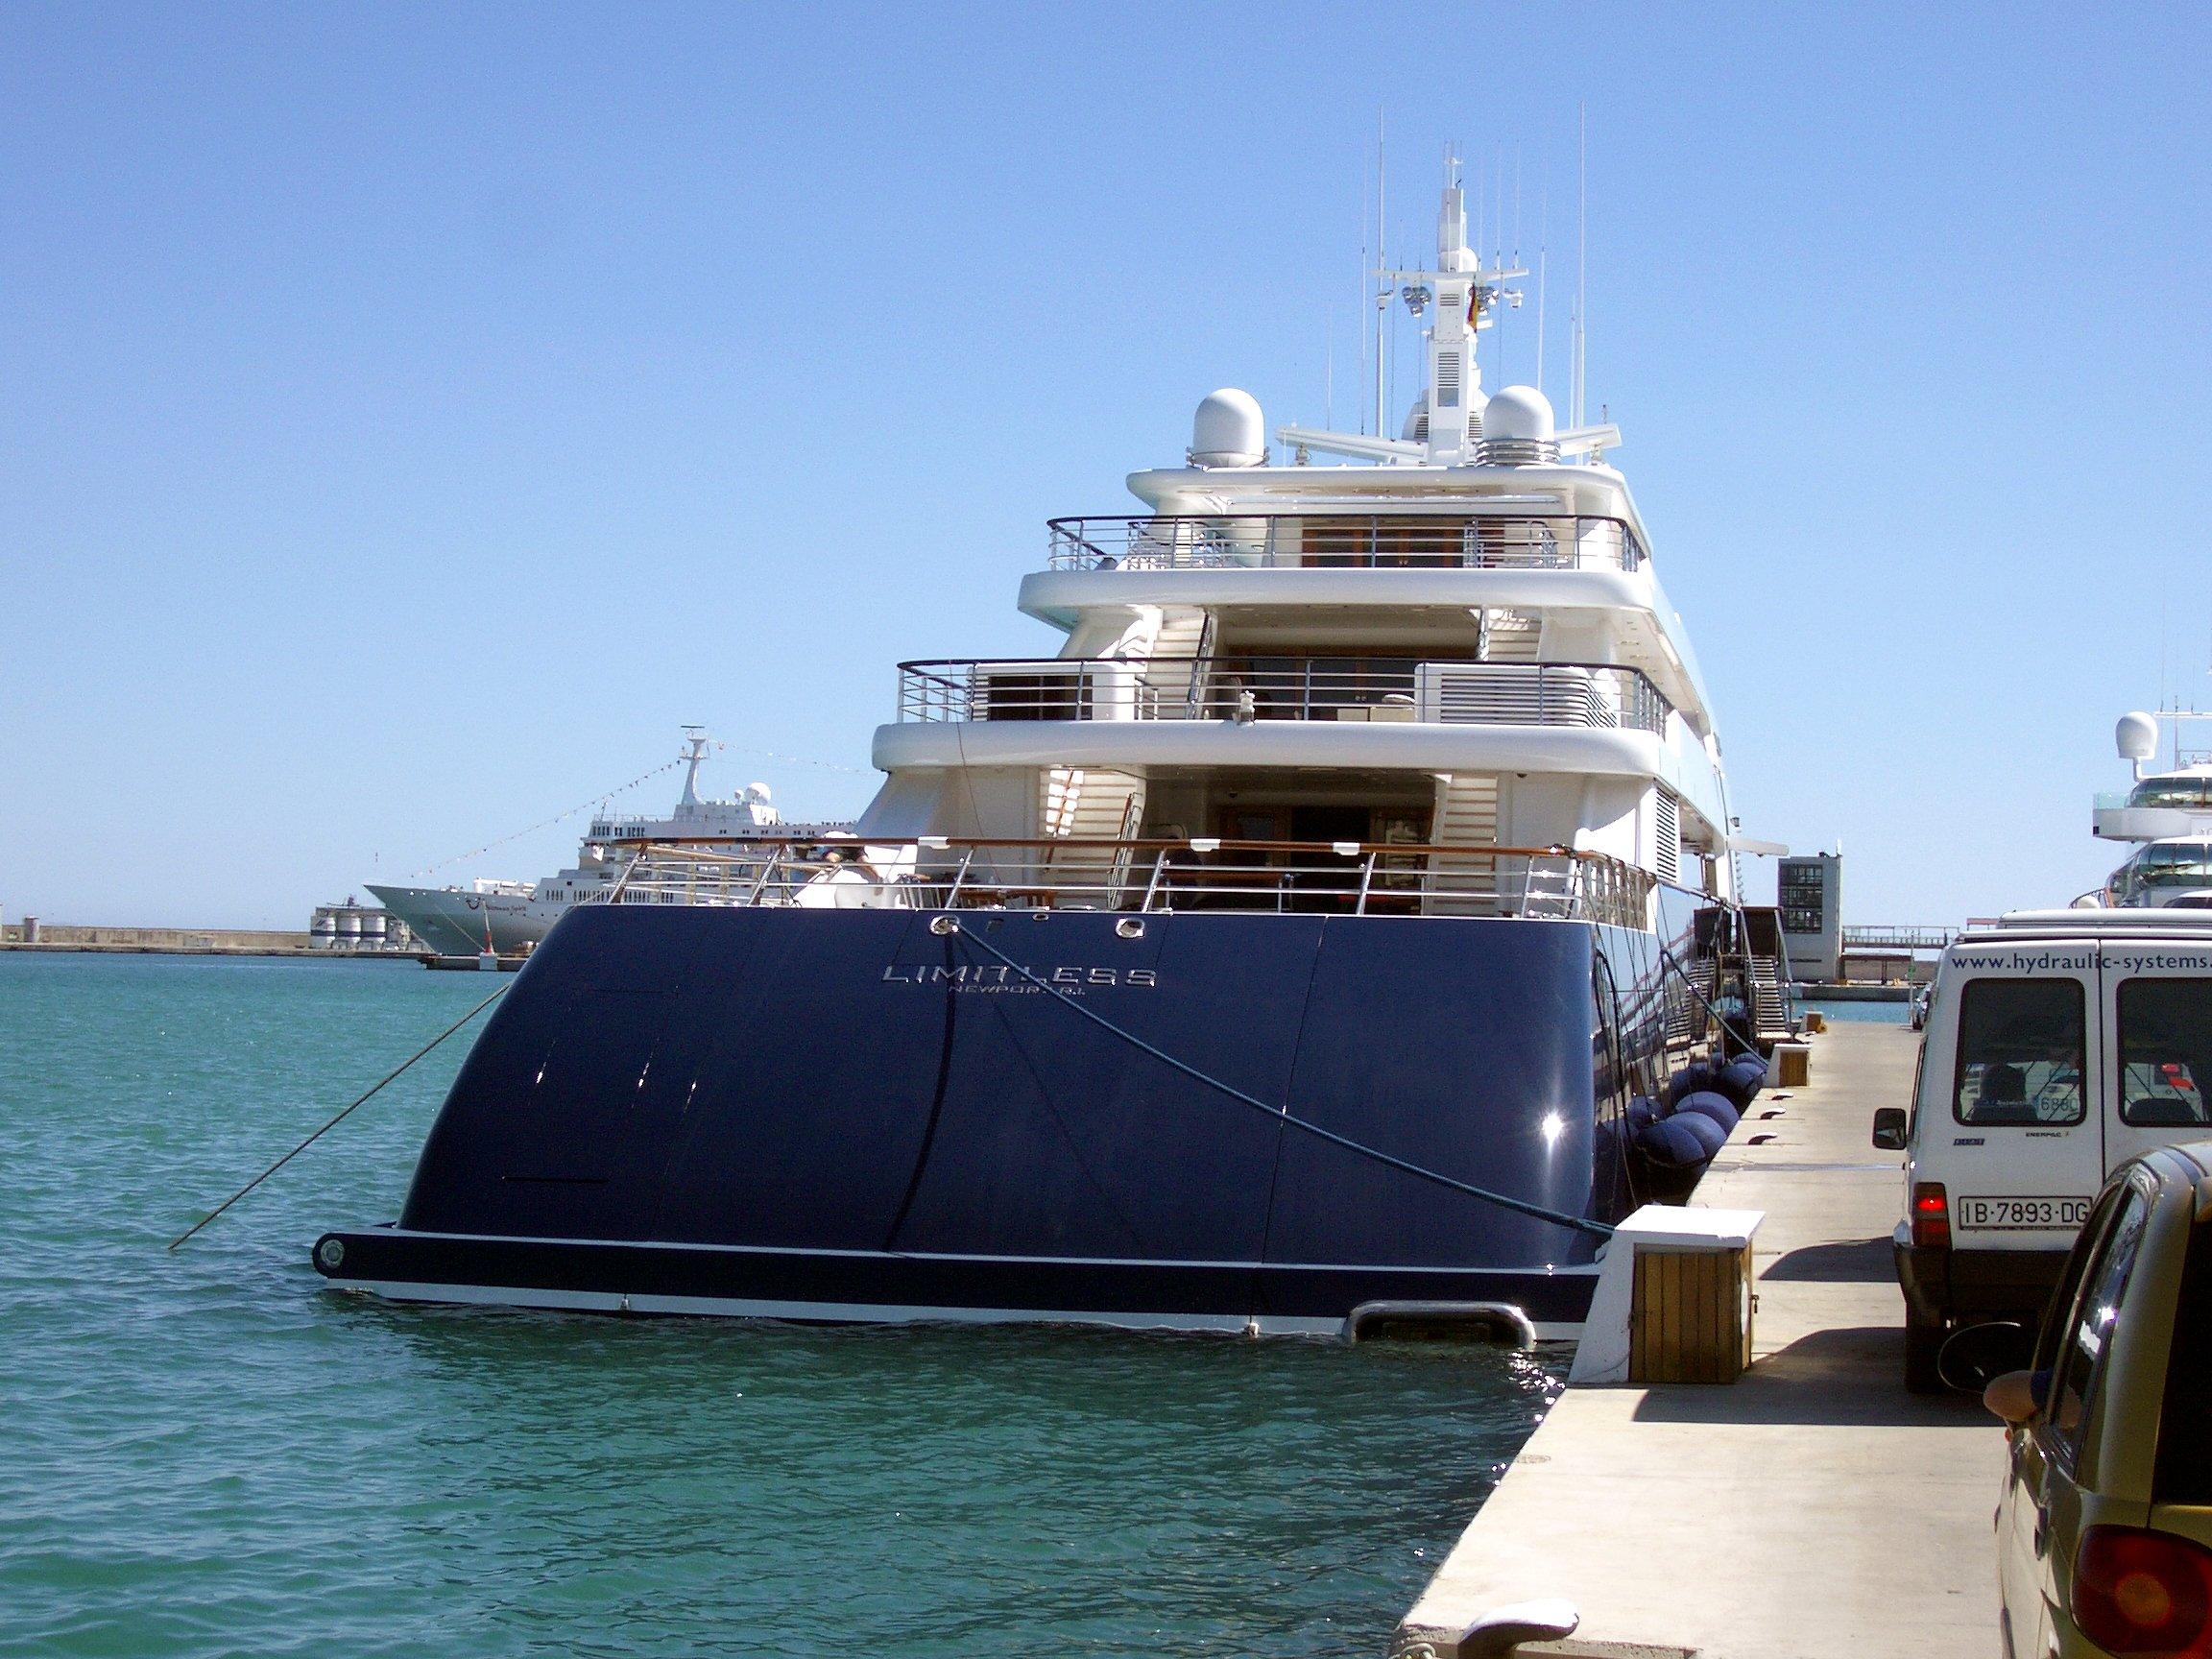 Limitless yacht - Leslie Wexner